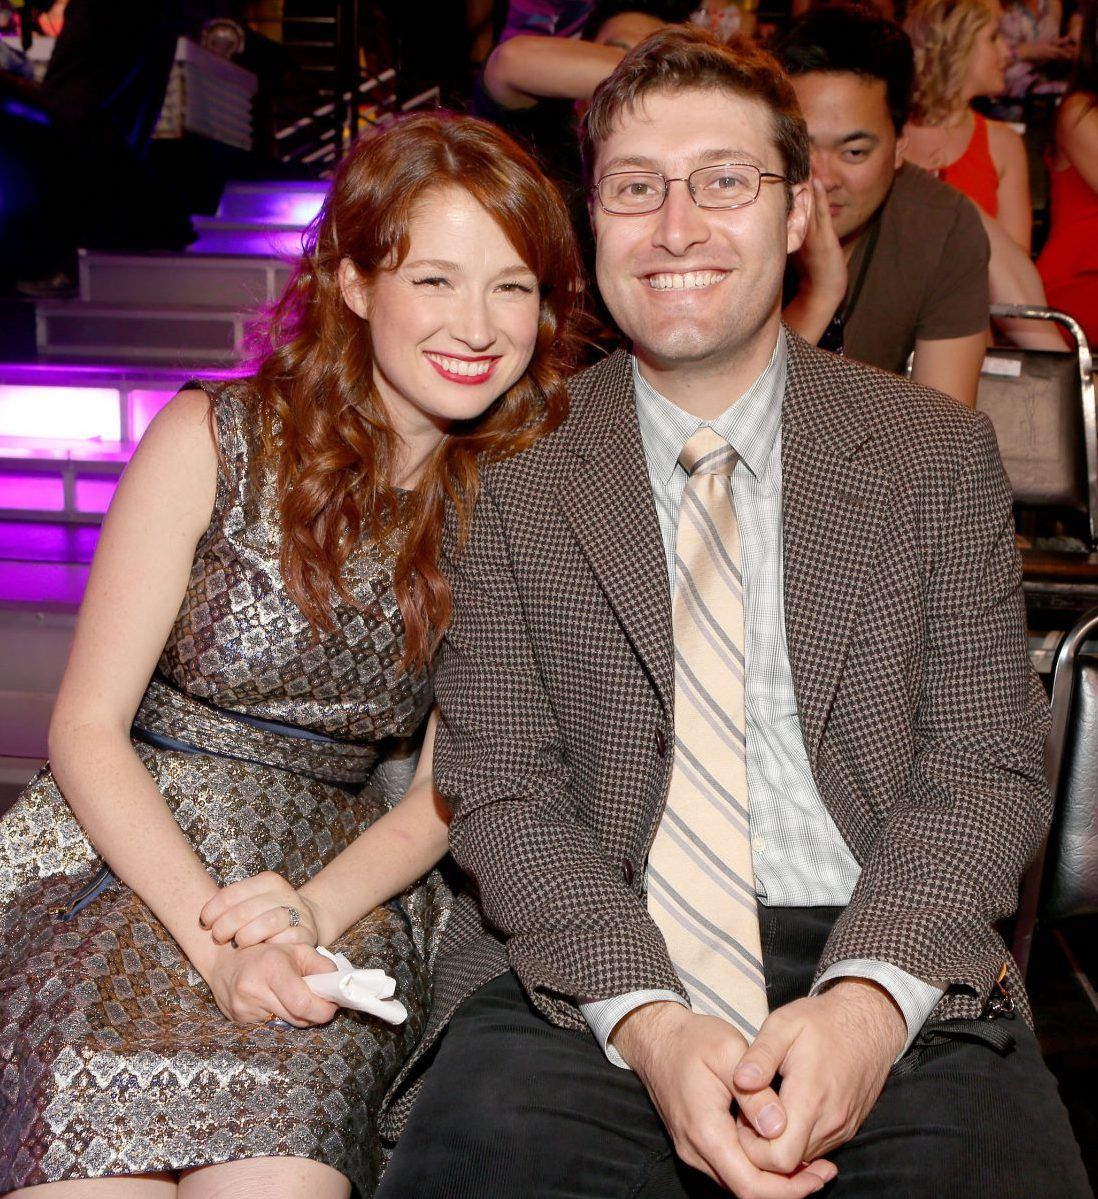 Ellie Kemper with husband Michael Koman at the 2012 Do Something Awards